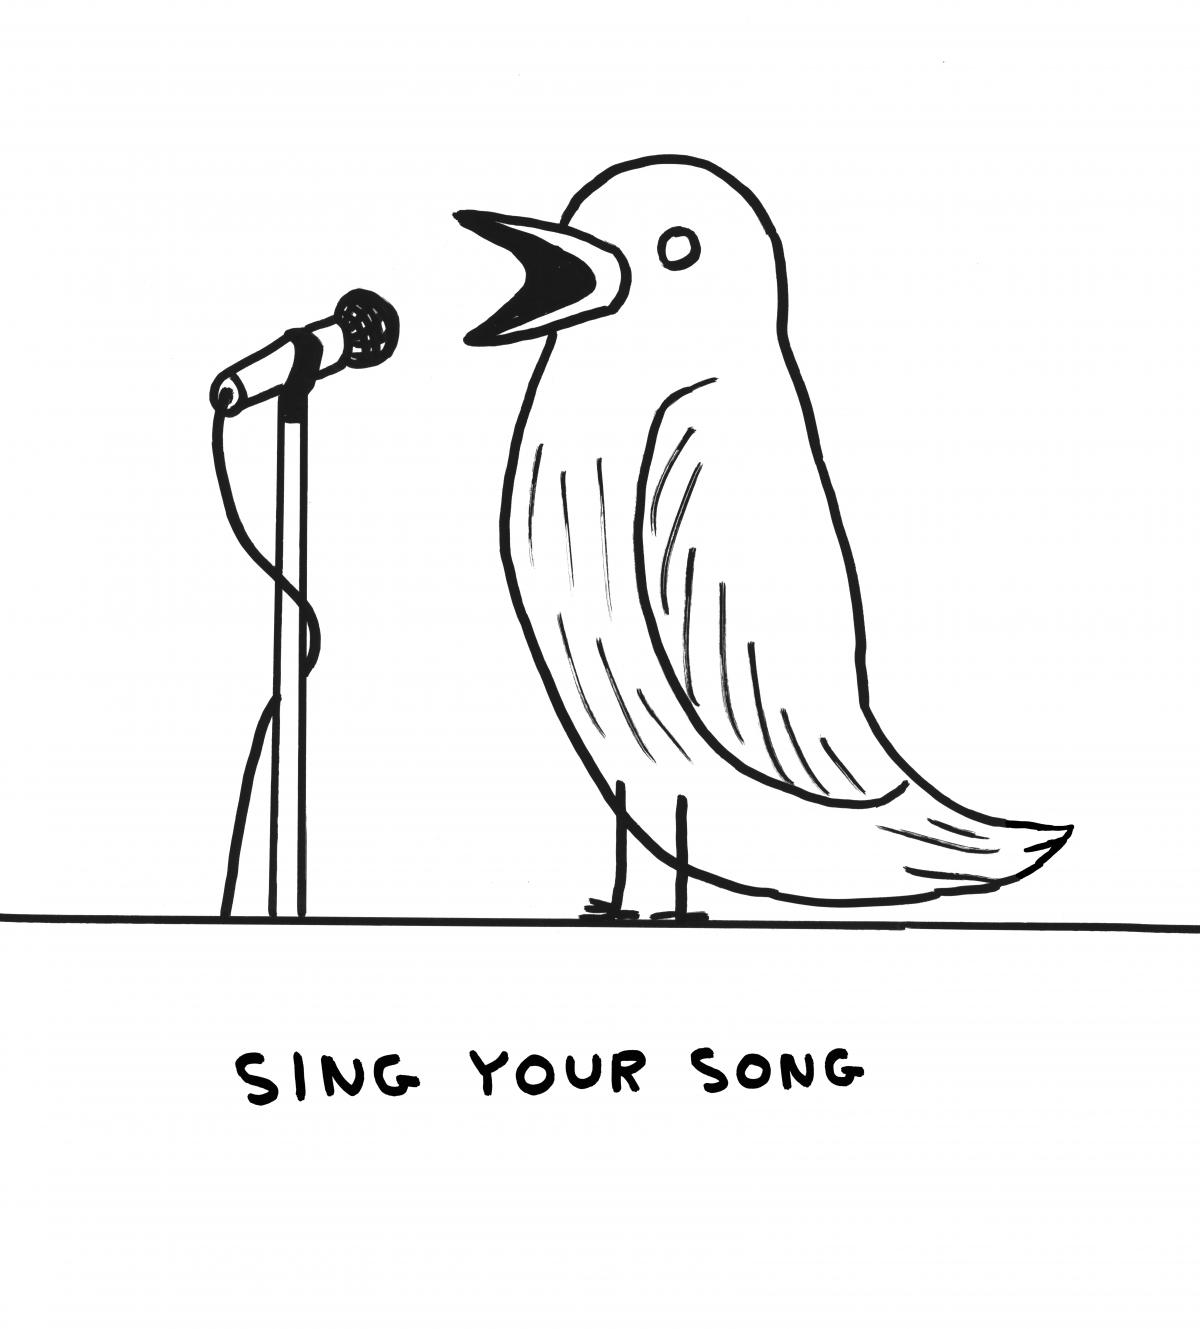 Shrigley bird singing